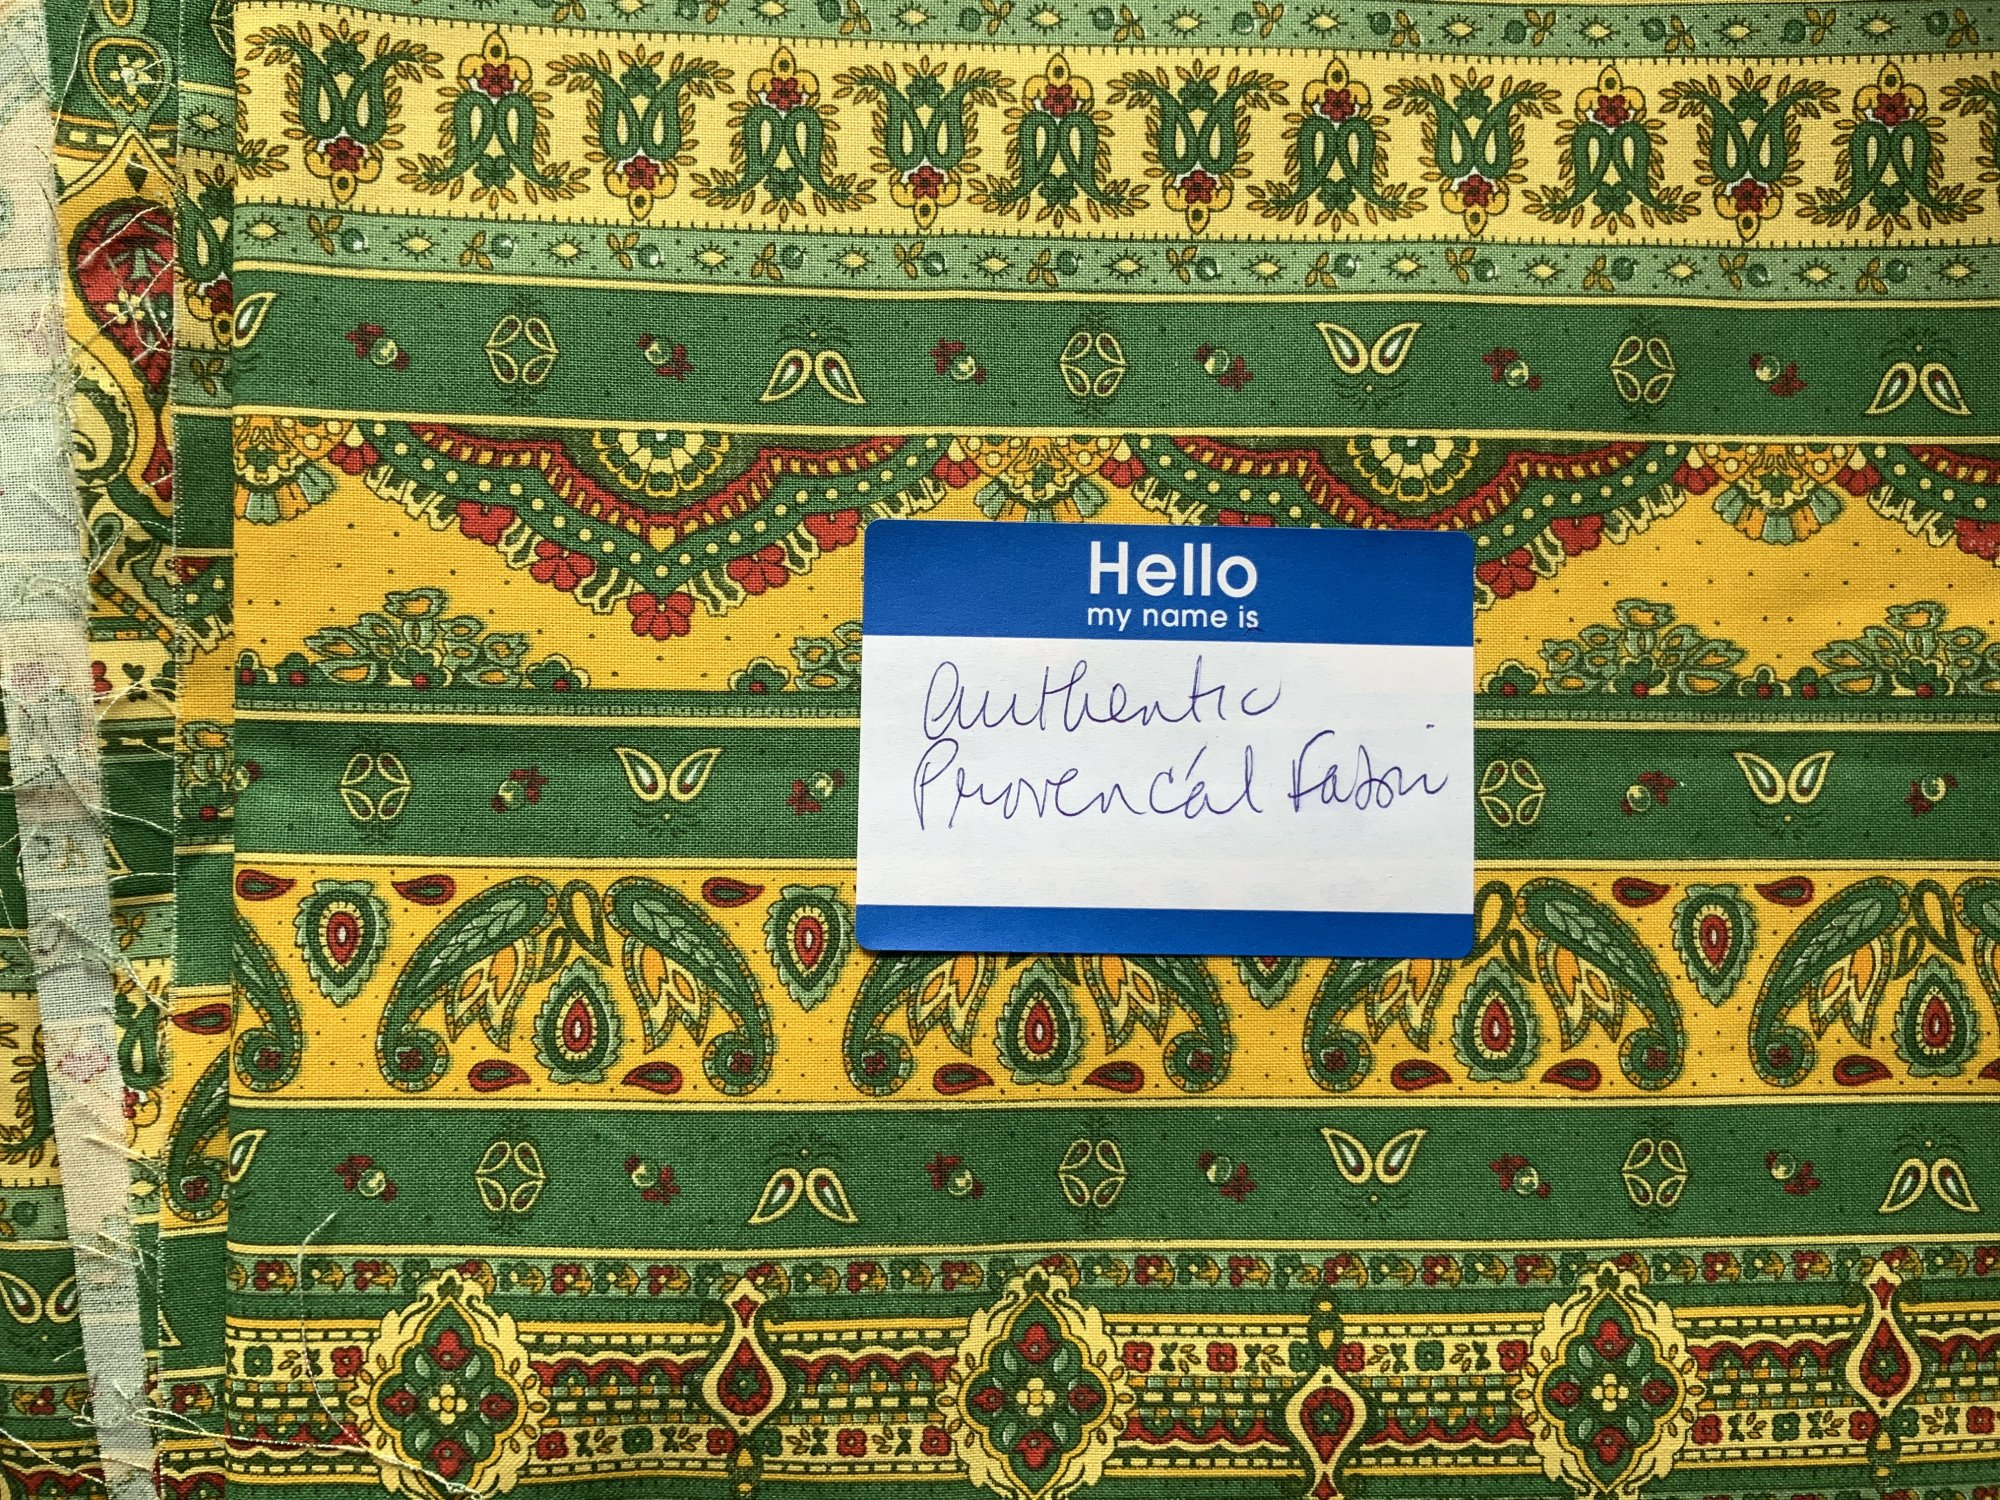 Authentic Proven?al Fabric - direct from South of France!